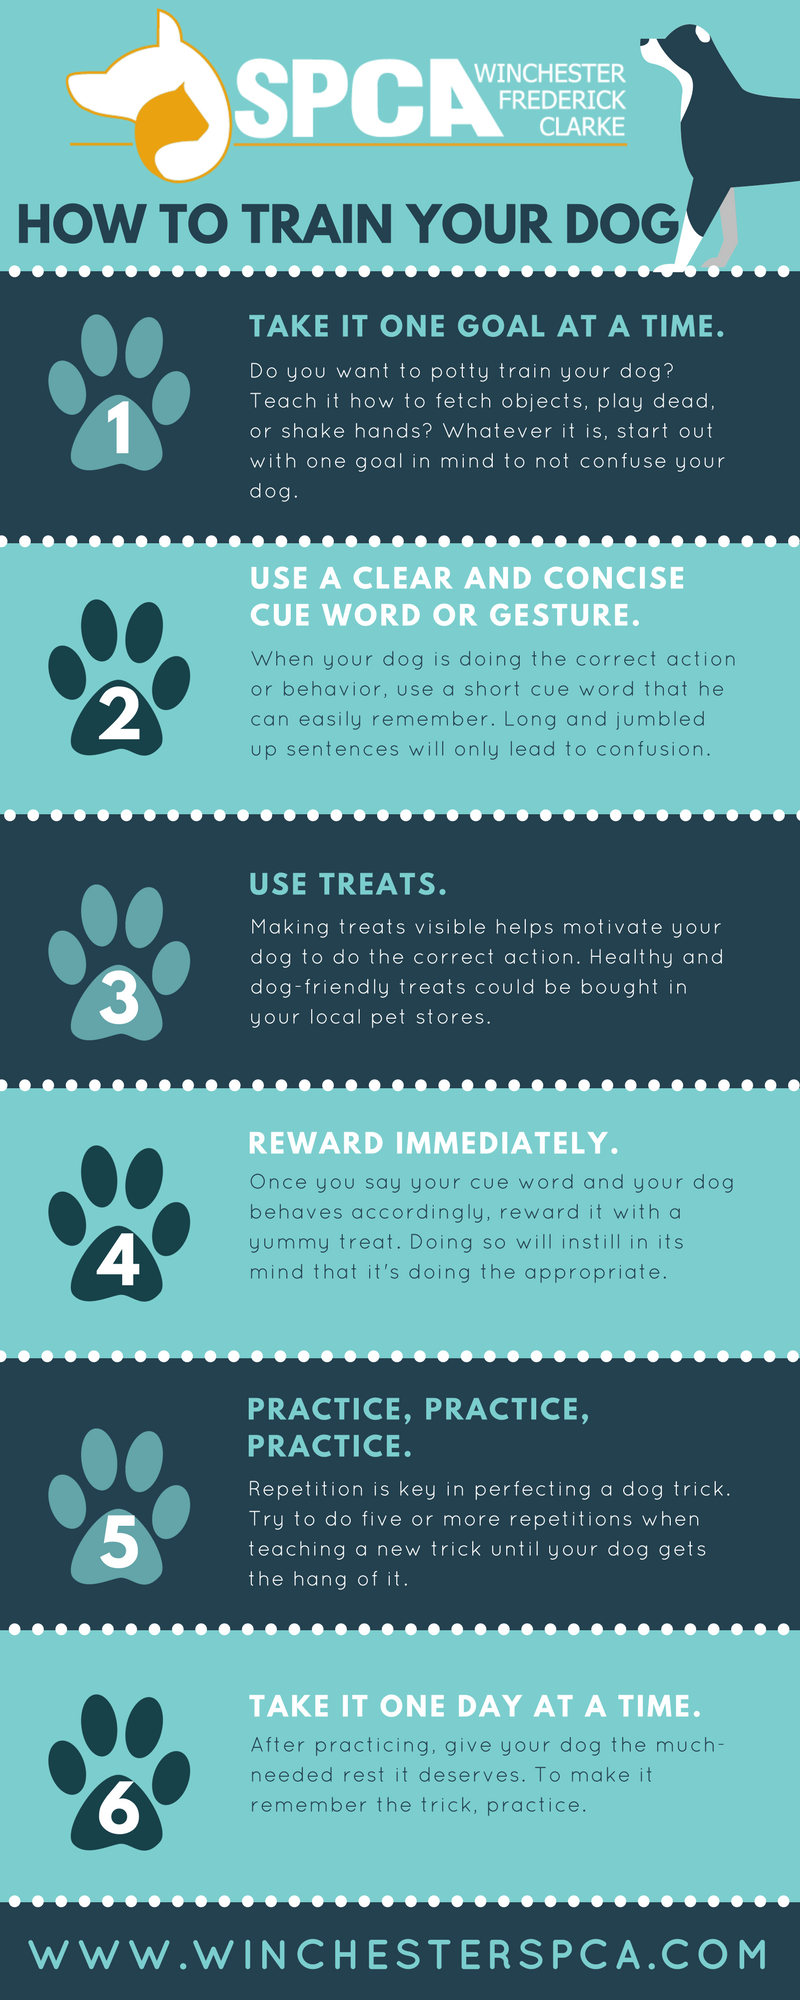 6 Steps to Training Your Dog